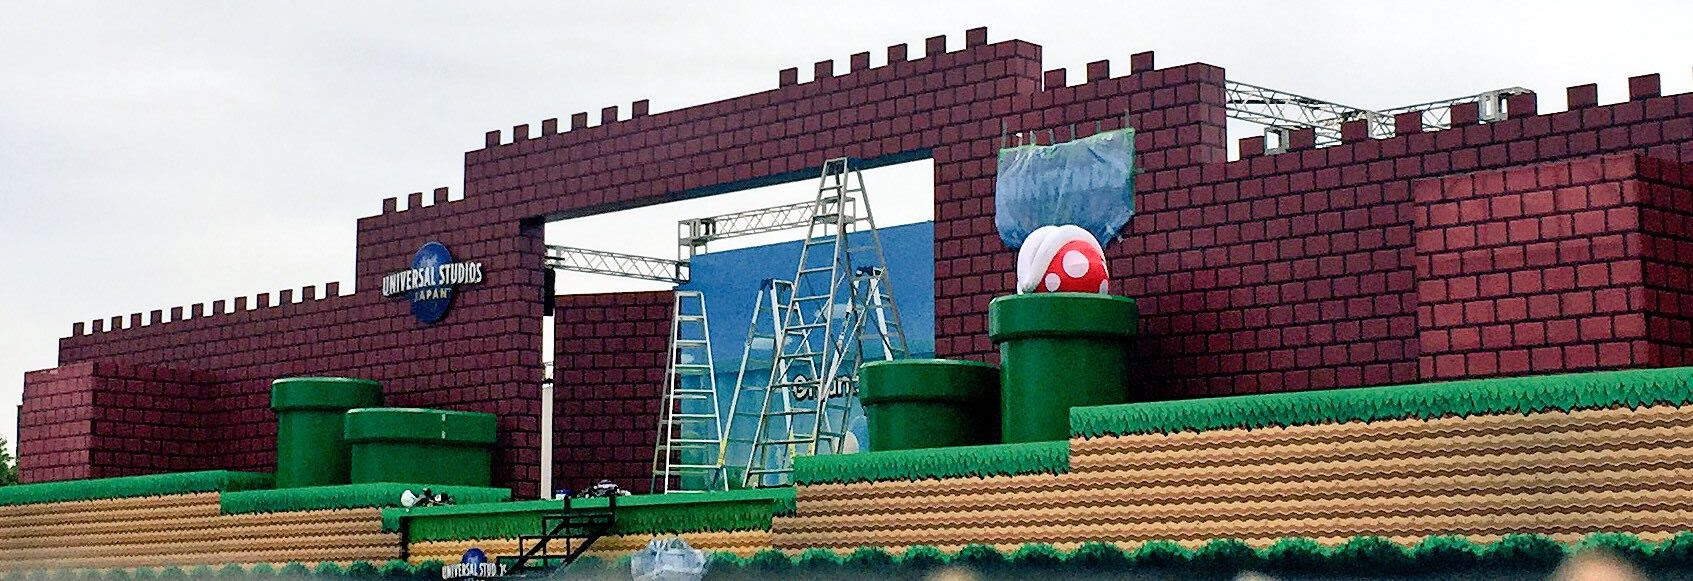 Images of Nintendo World at Universal Studios Japan crop up screenshot